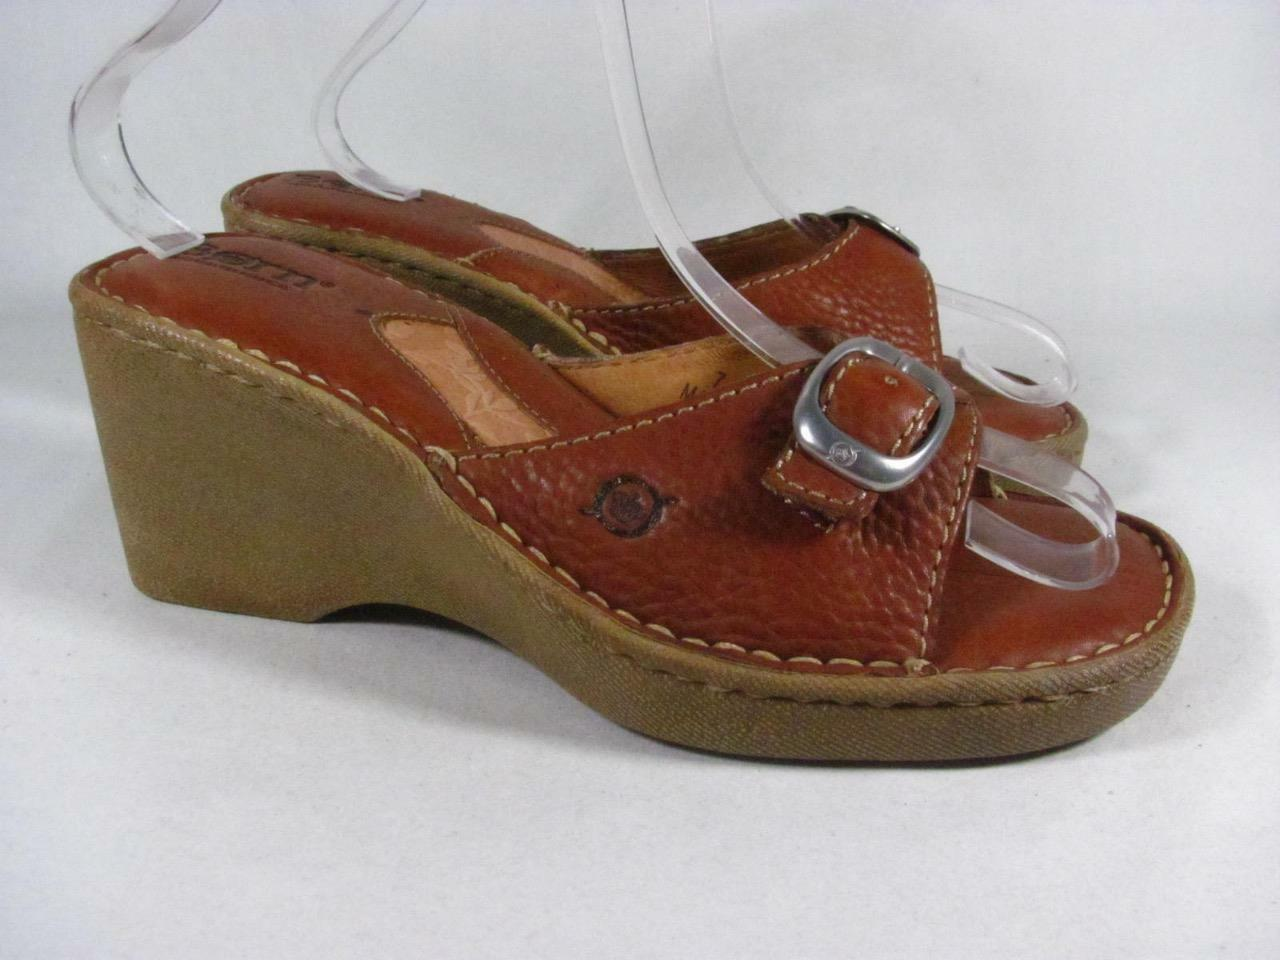 Born Buckle Buckle Born Slide Sandal Wedge Women size 7 Tan Leather 77444c